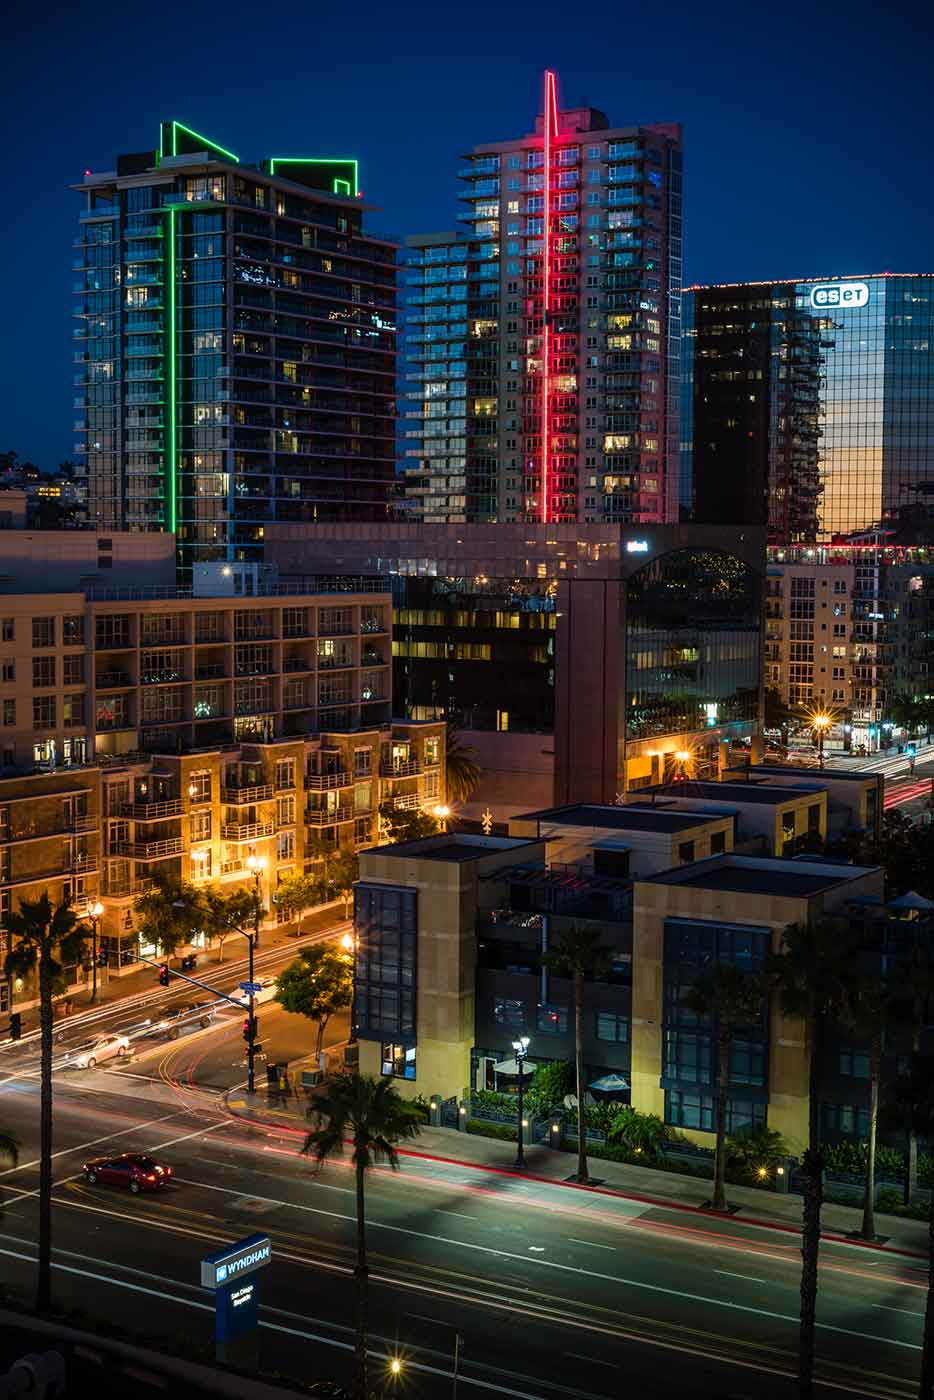 smlSan-Diego-Vacation---August-2015-86.jpg